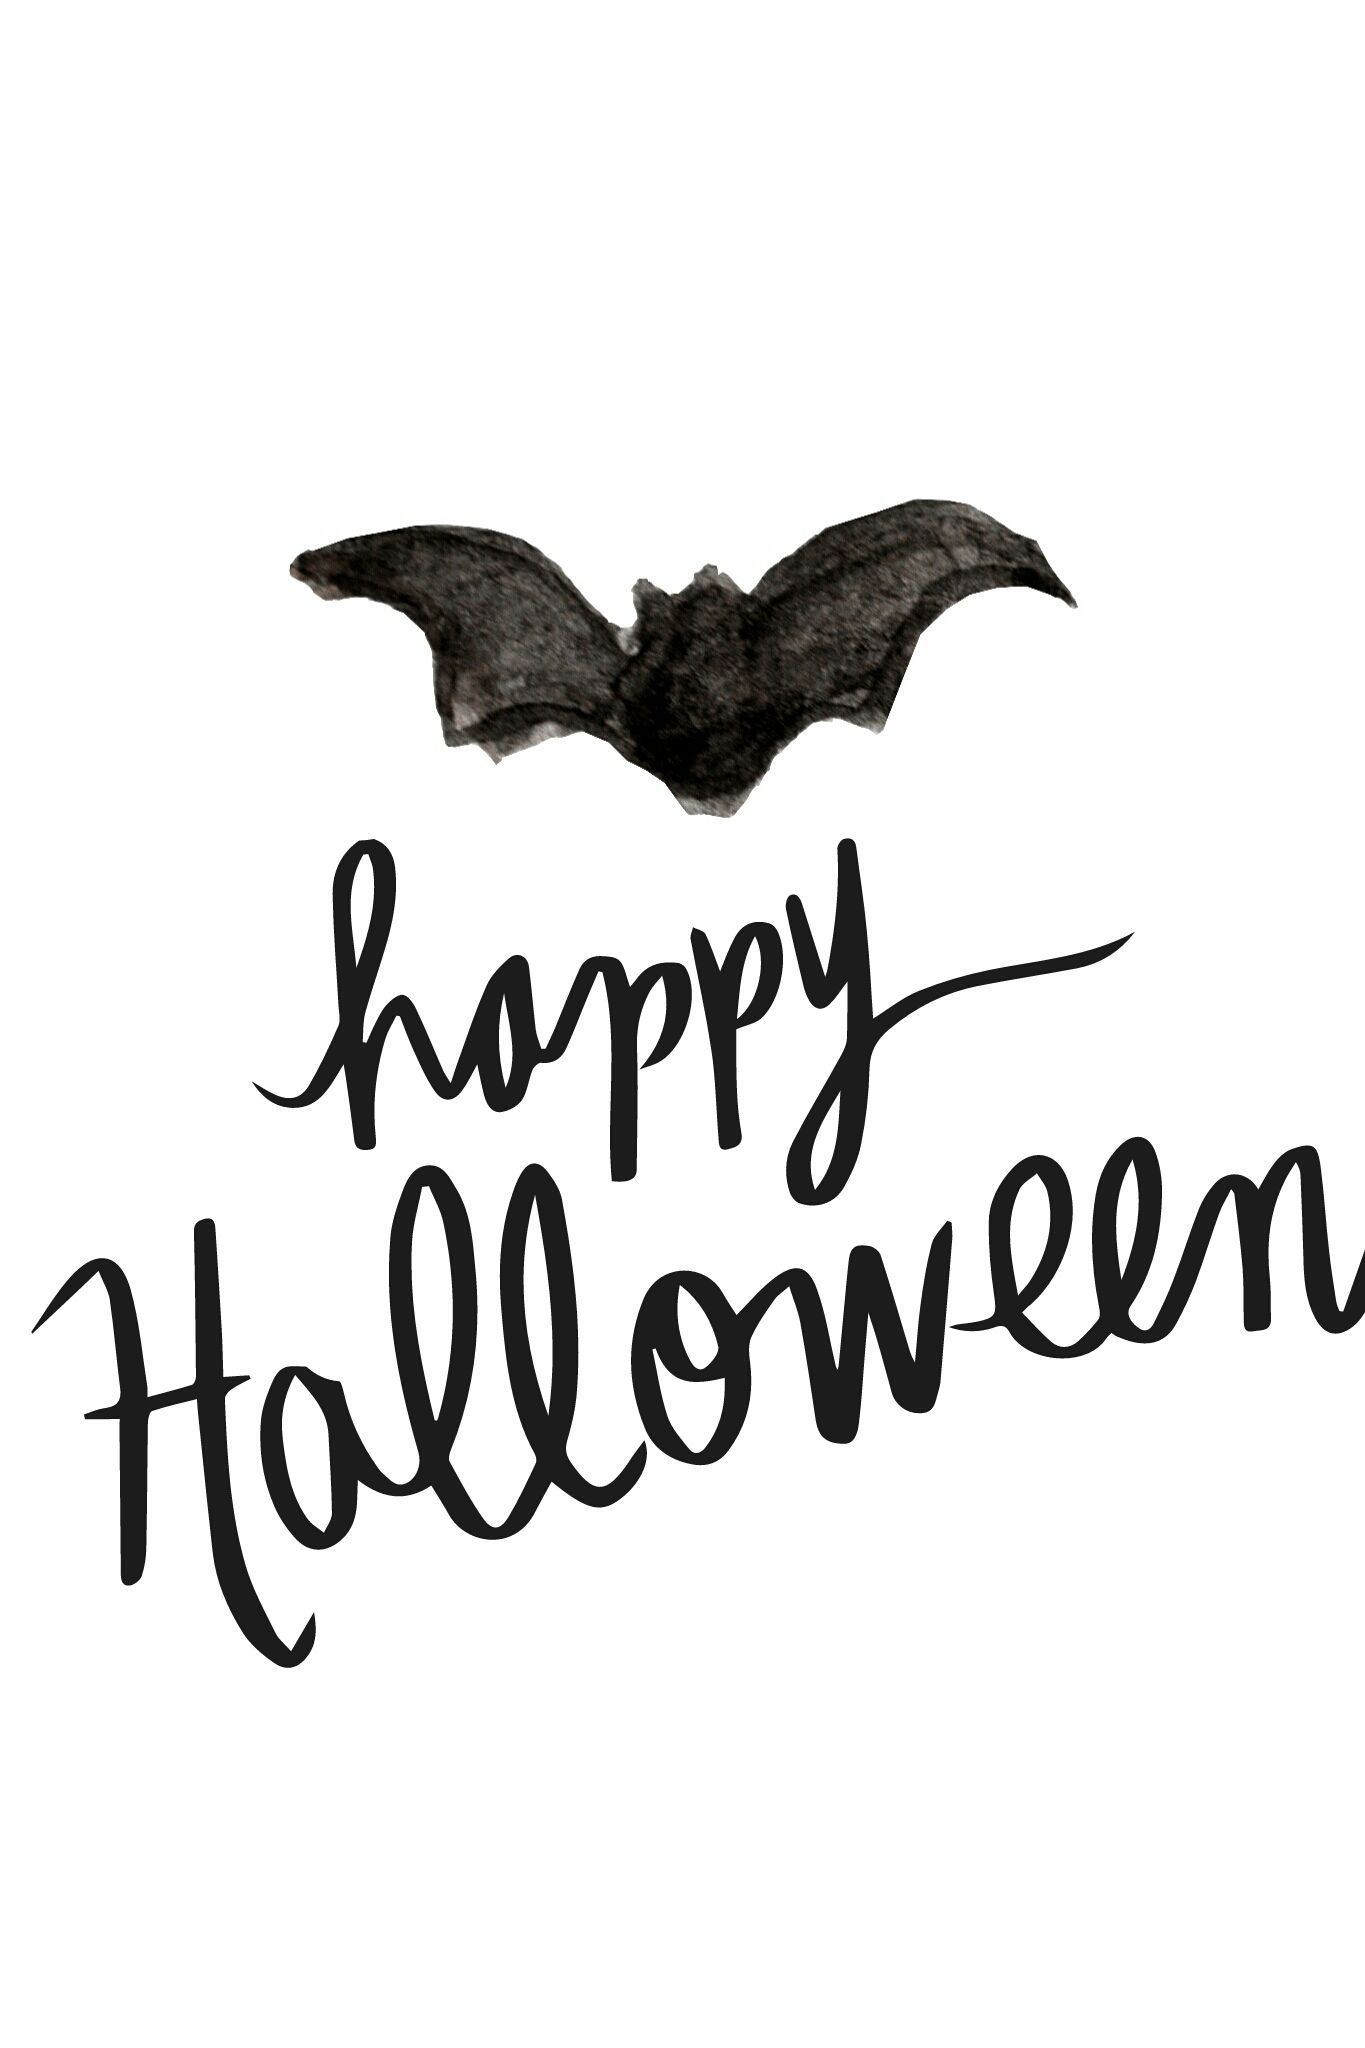 Happy halloween card clipart black and white banner free download Happy Halloween - Free Printable Calendar, Blank Template, High ... banner free download